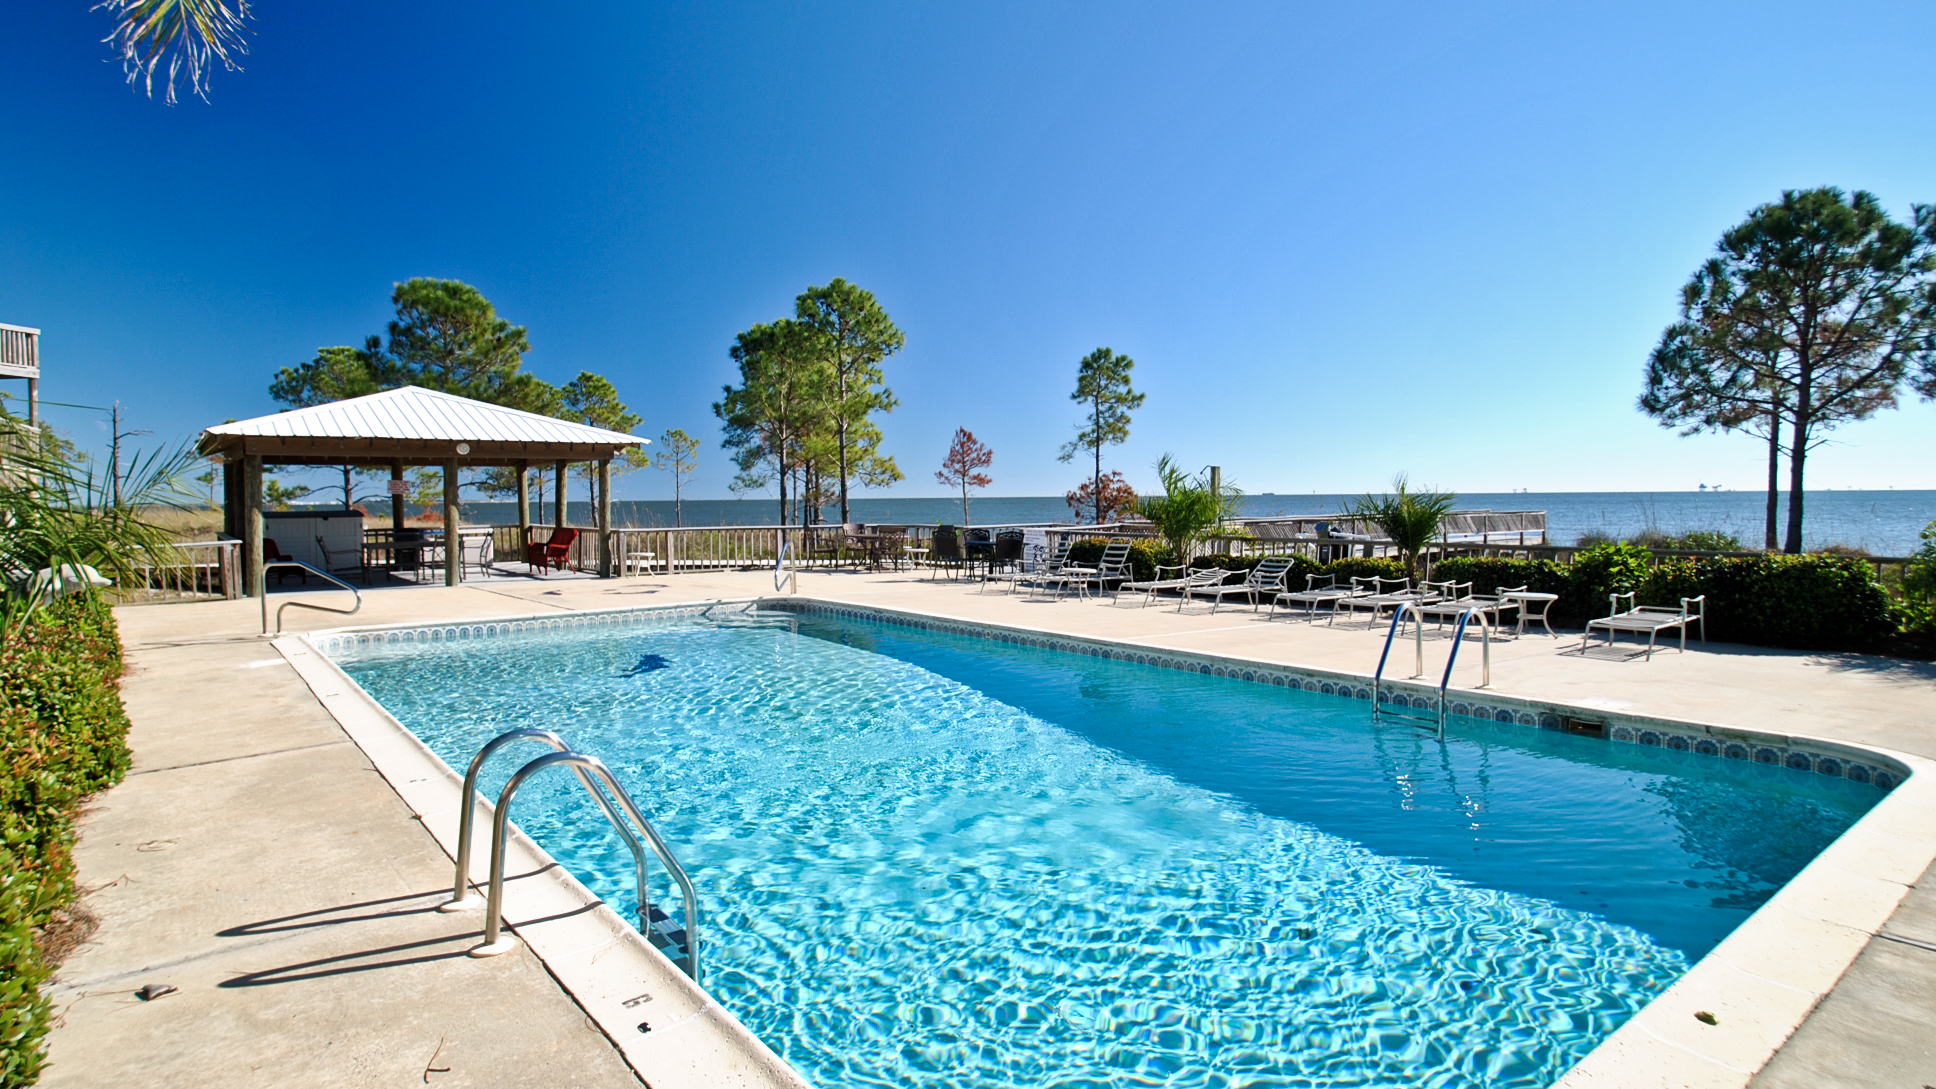 Gulf-side swimming pool at Sandcastle Condominiums, a vacation rental beach condo on Dauphin Island Alabama managed by Dauphin Island Beach Rentals